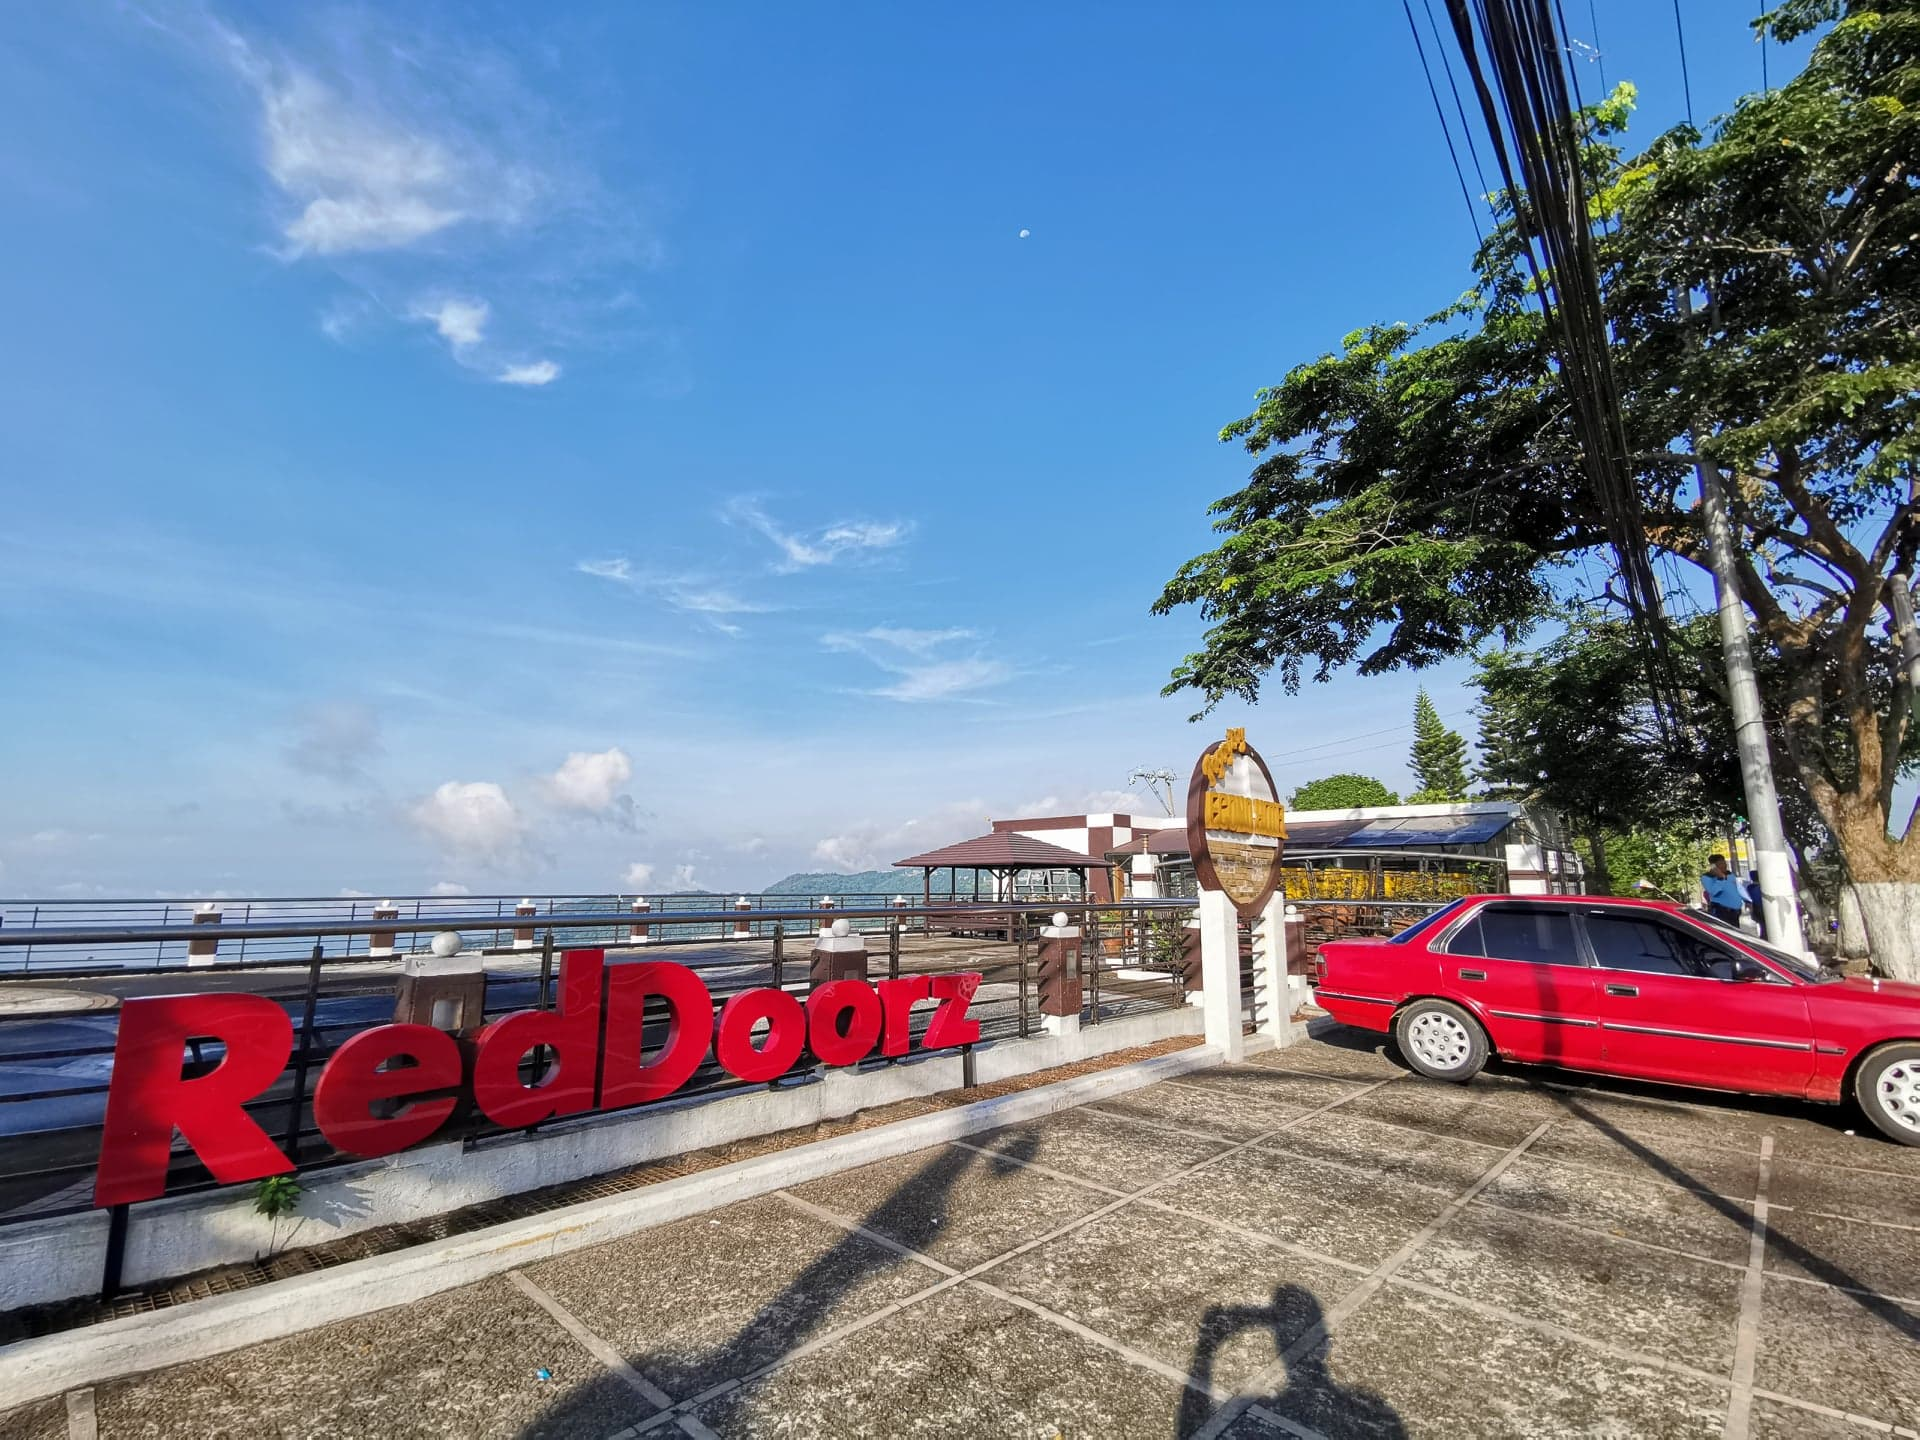 reddoorz-tagaytay-staycation